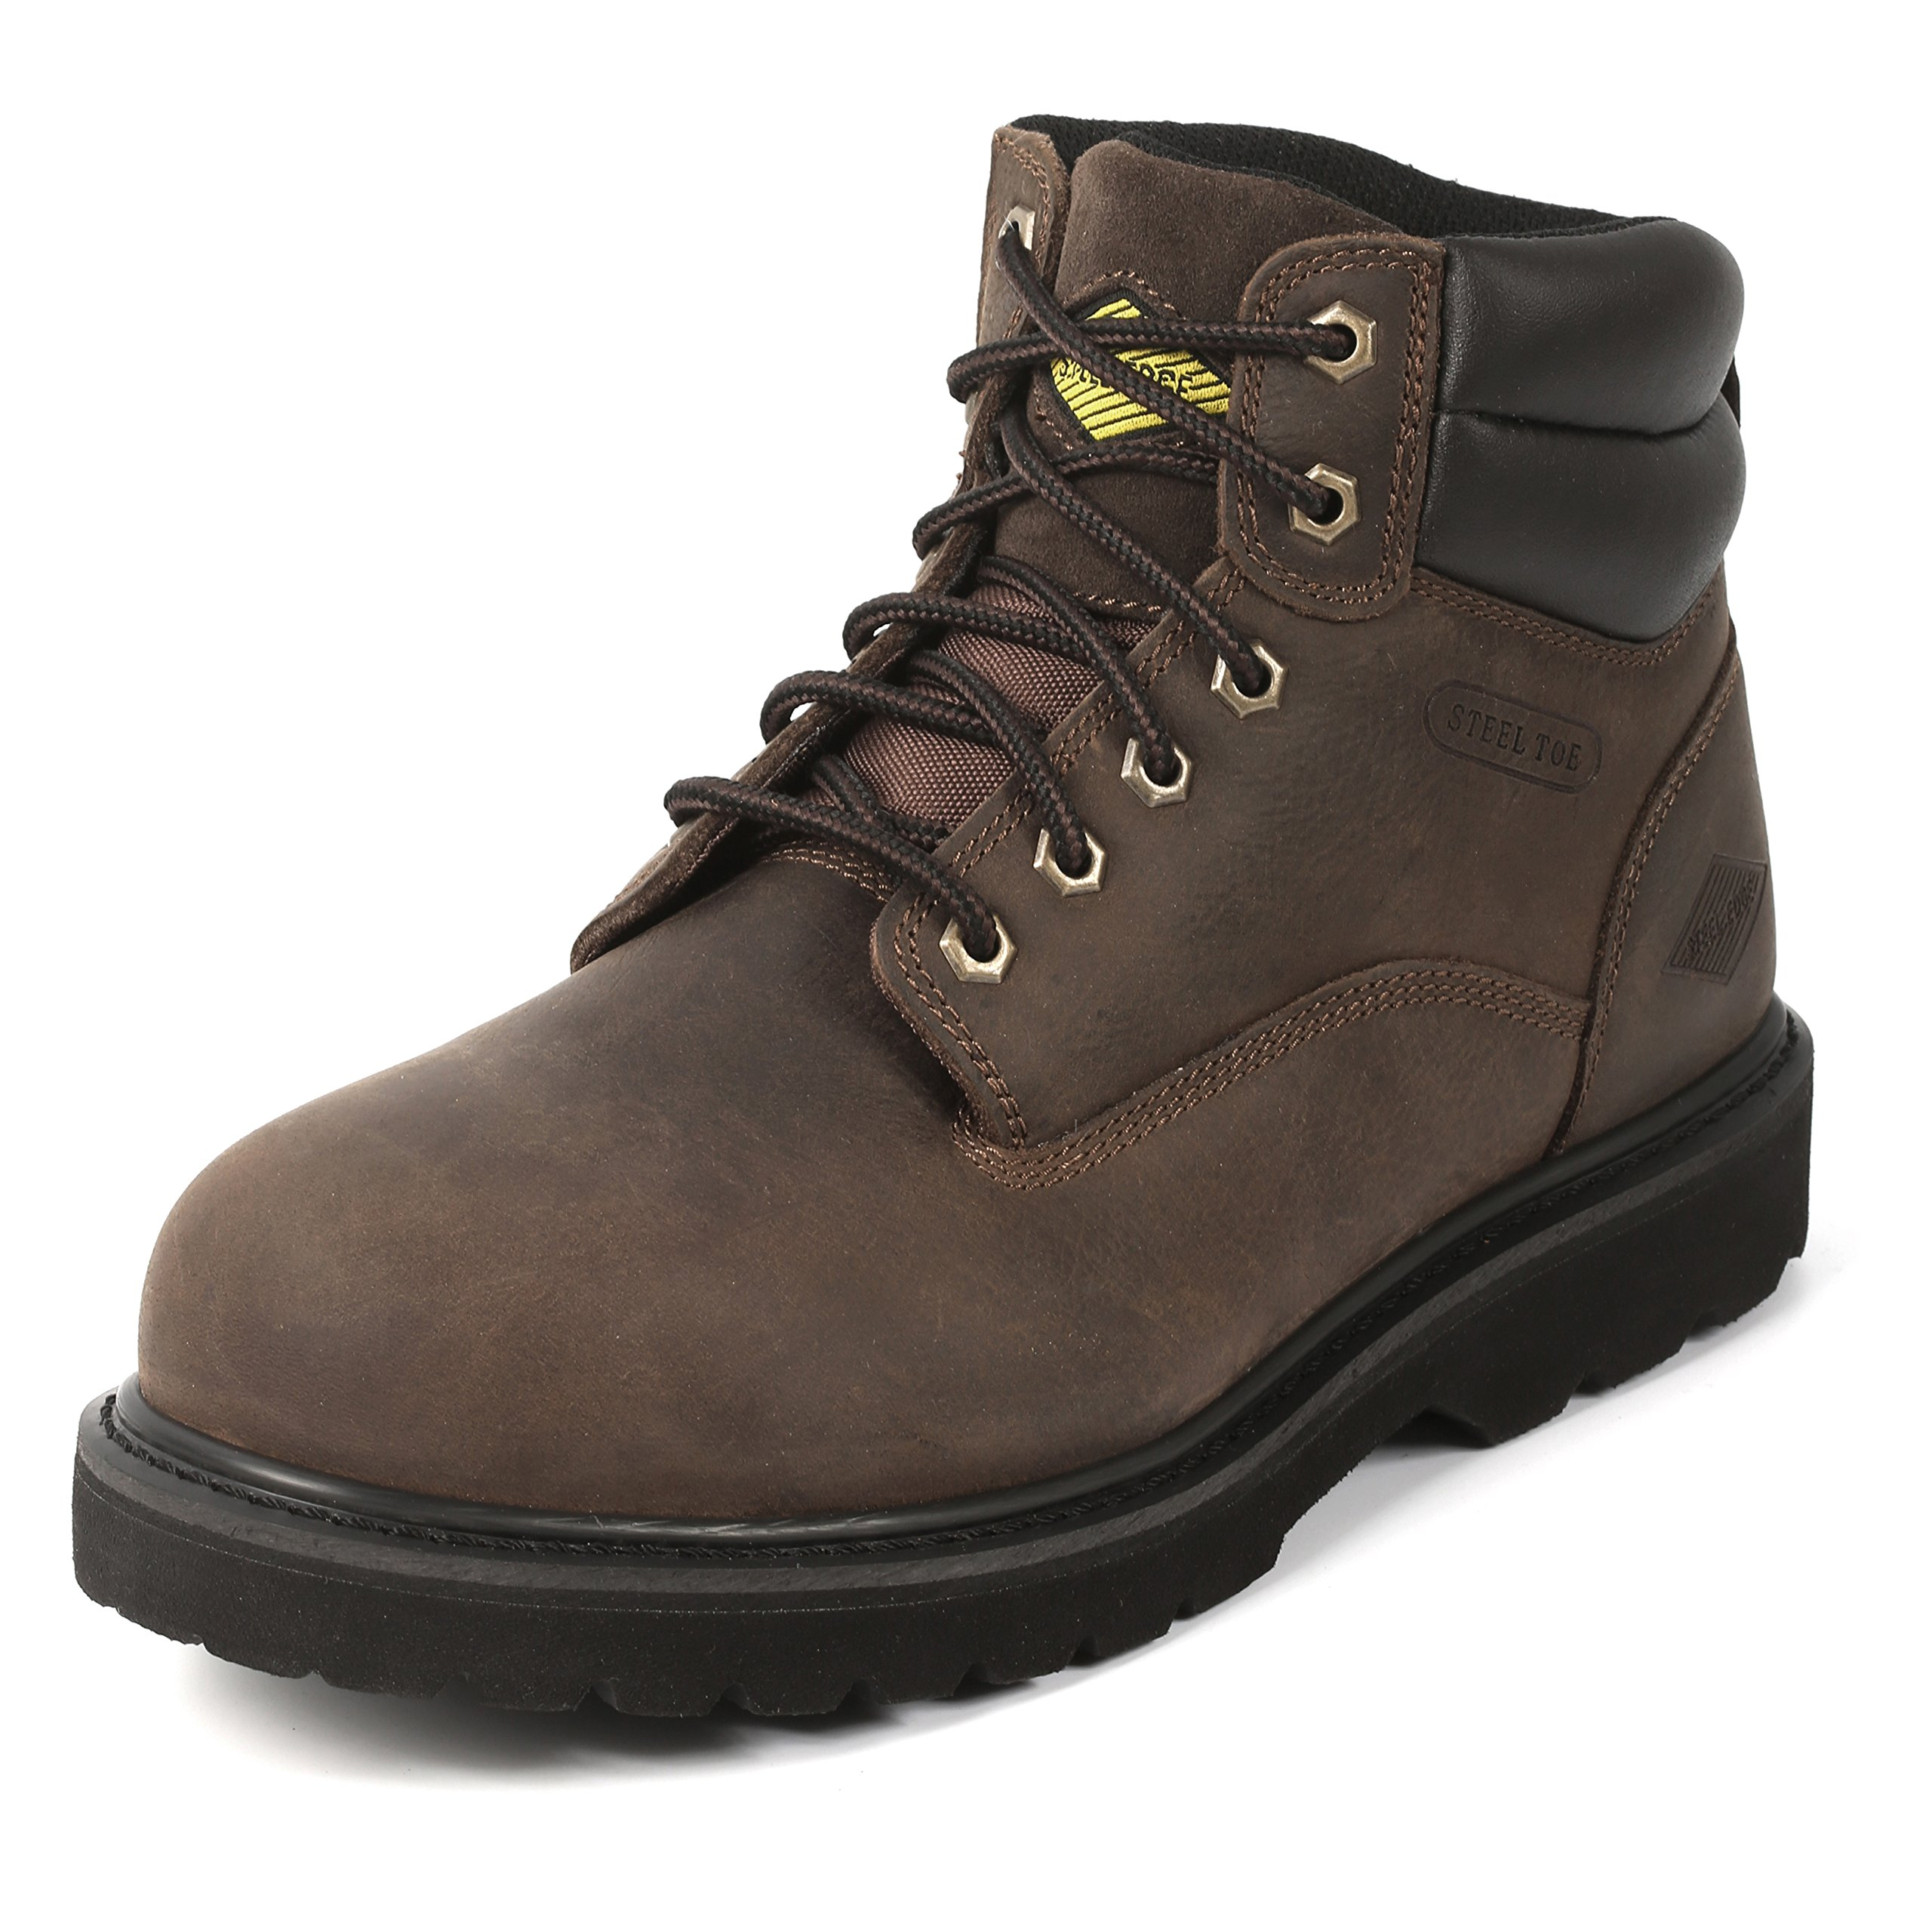 """6"""" Steel Toe Work Boots - Timberland Style - Oil Slip Resistant Safety Shoes (9.5)"""